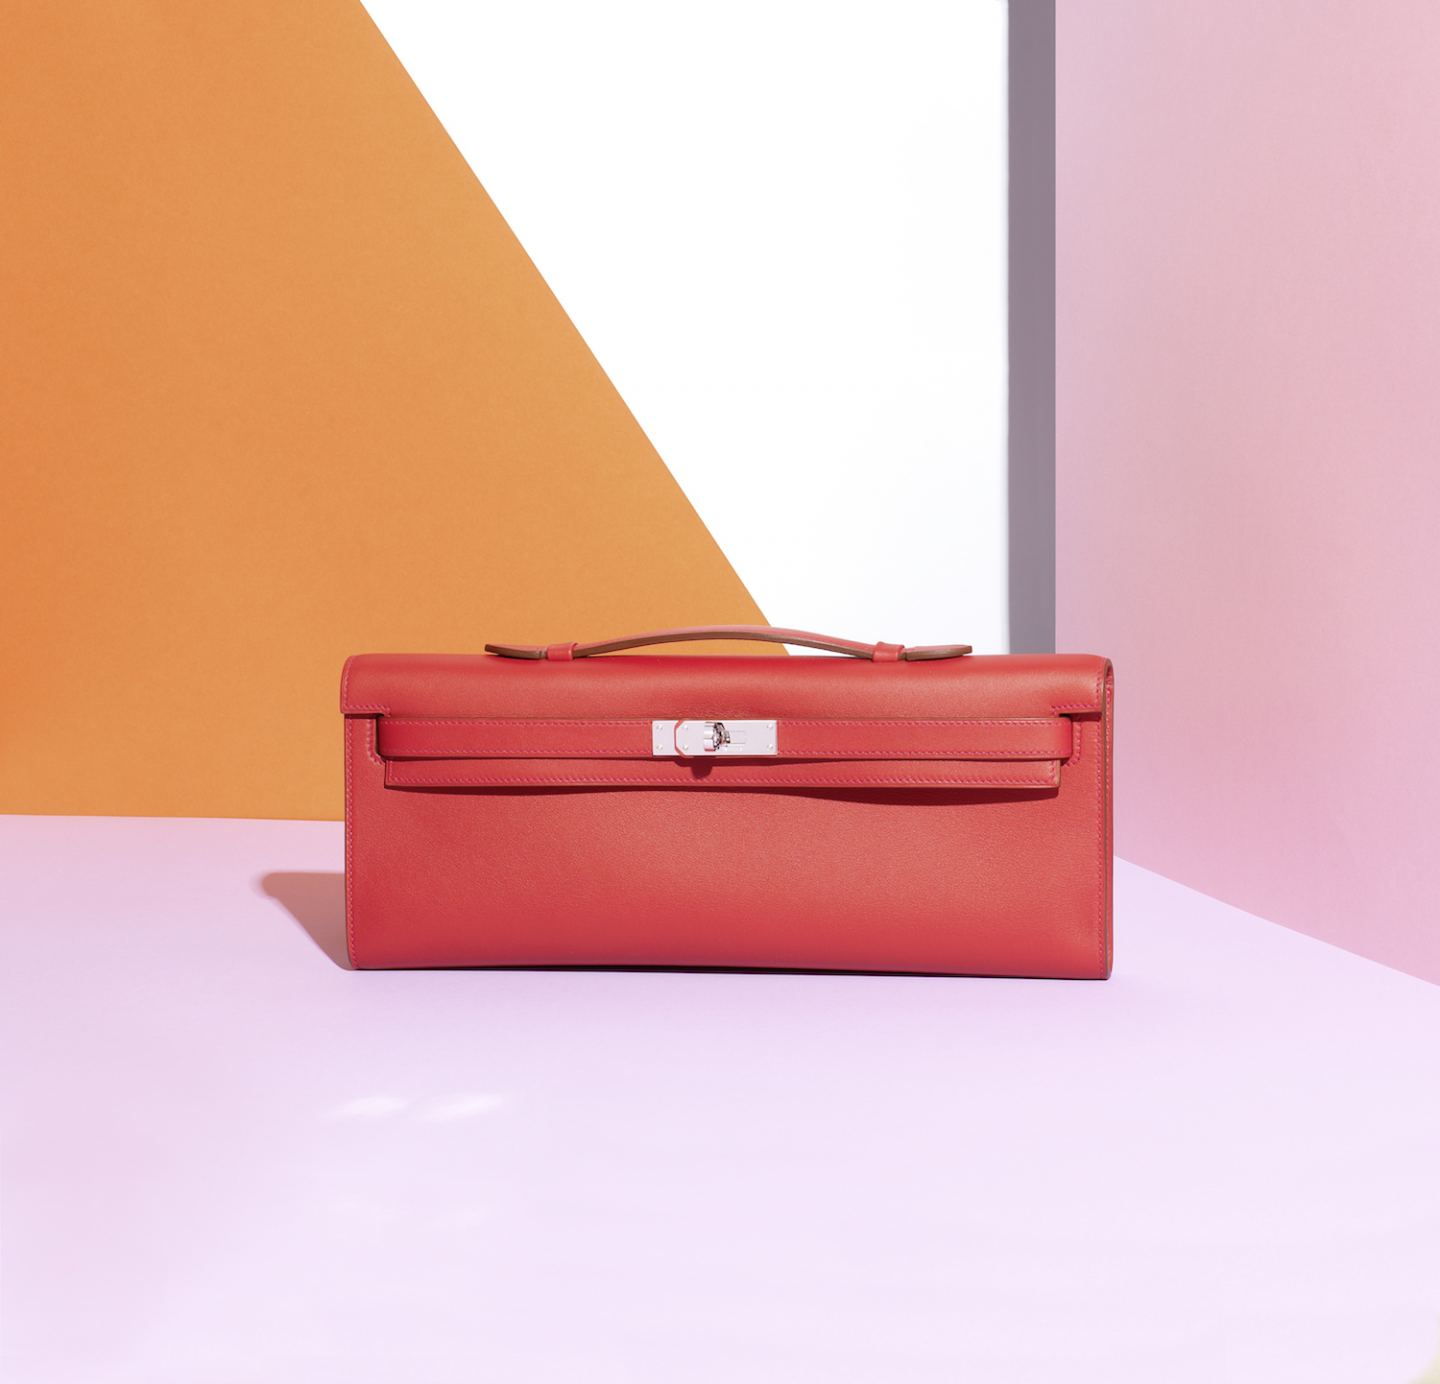 Hermes Kelly Cut bonhams auction house